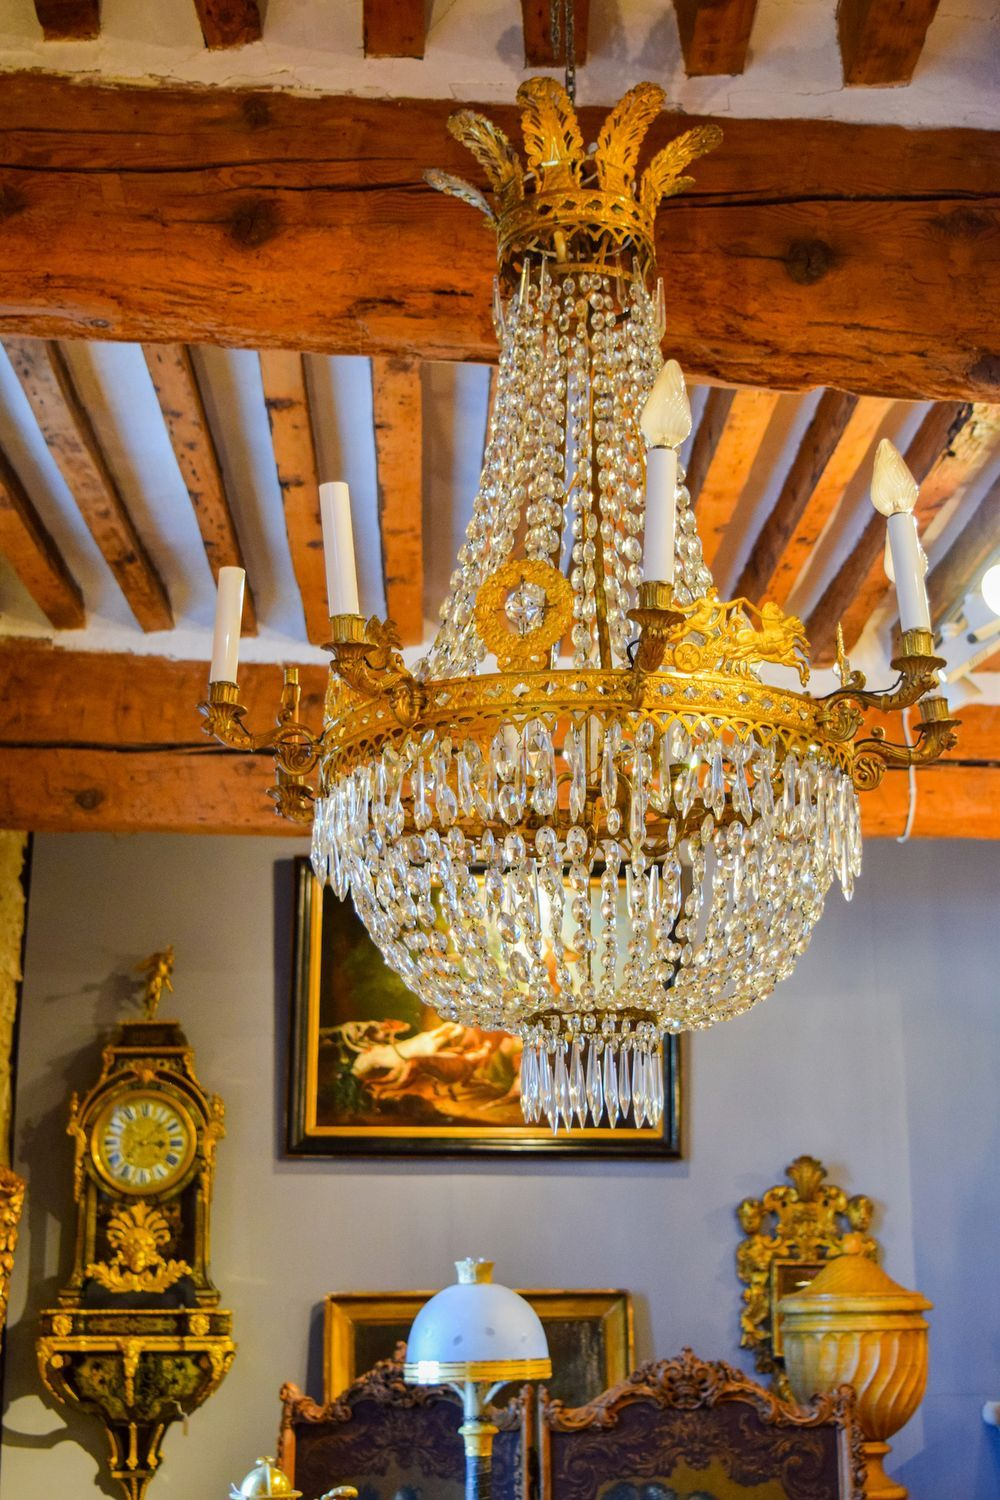 Antique French Chandelier In L'Isle Sur La Sorgue